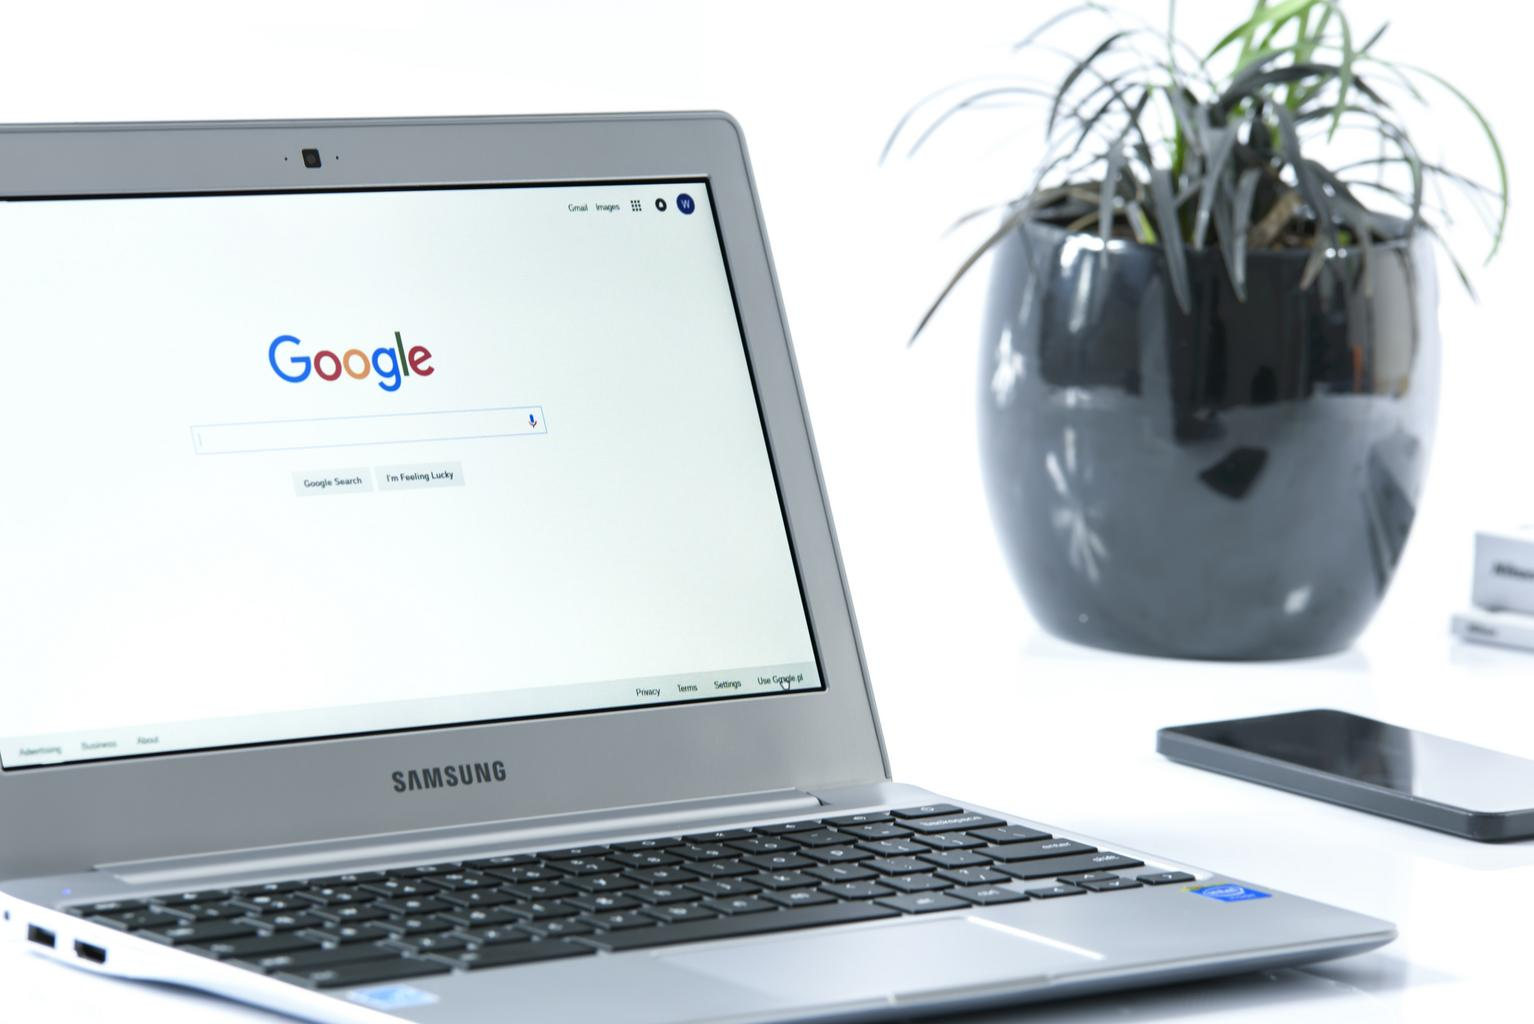 7 TIPS ON BUILDING AN SEO STRATEGY FOR SMALL BUSINESSES